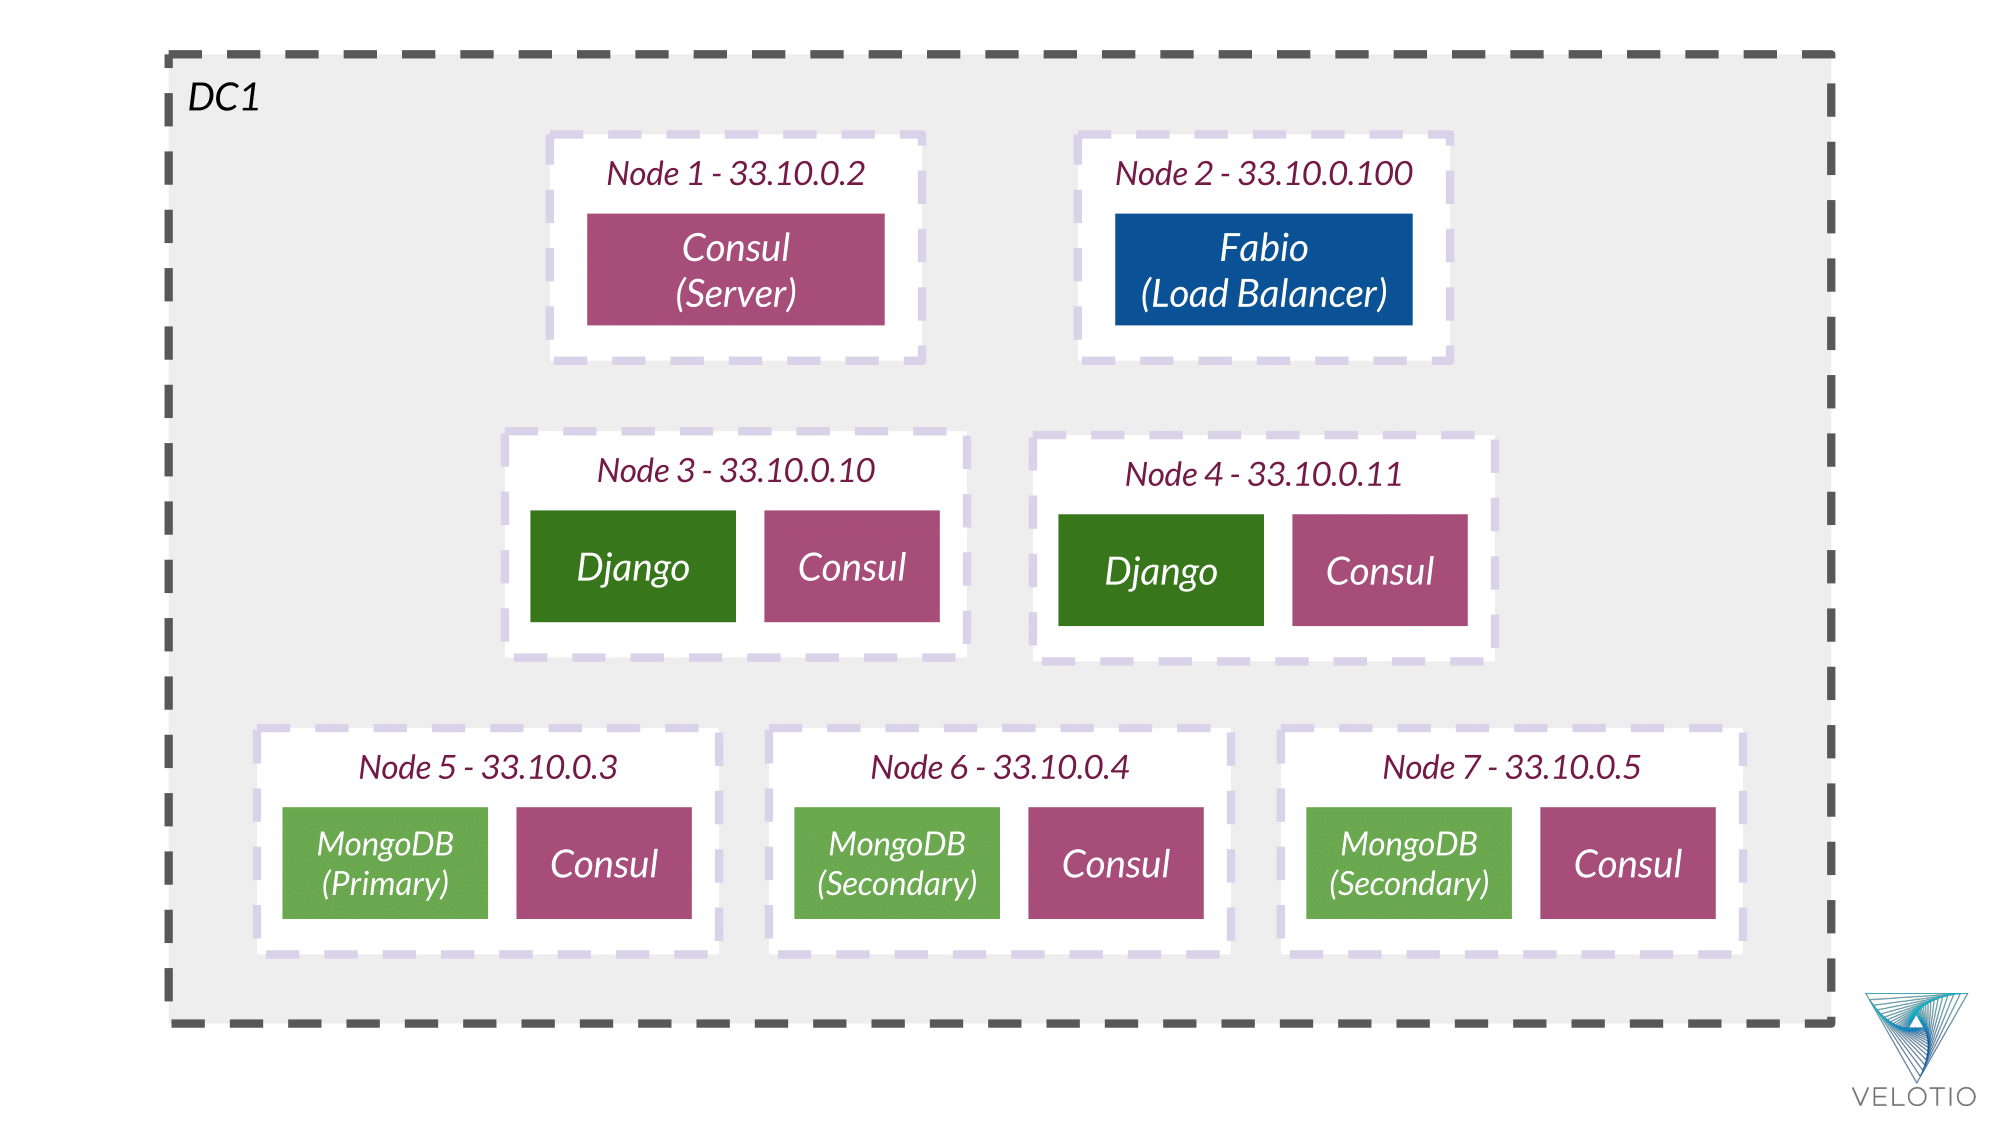 Example Application nodes and services